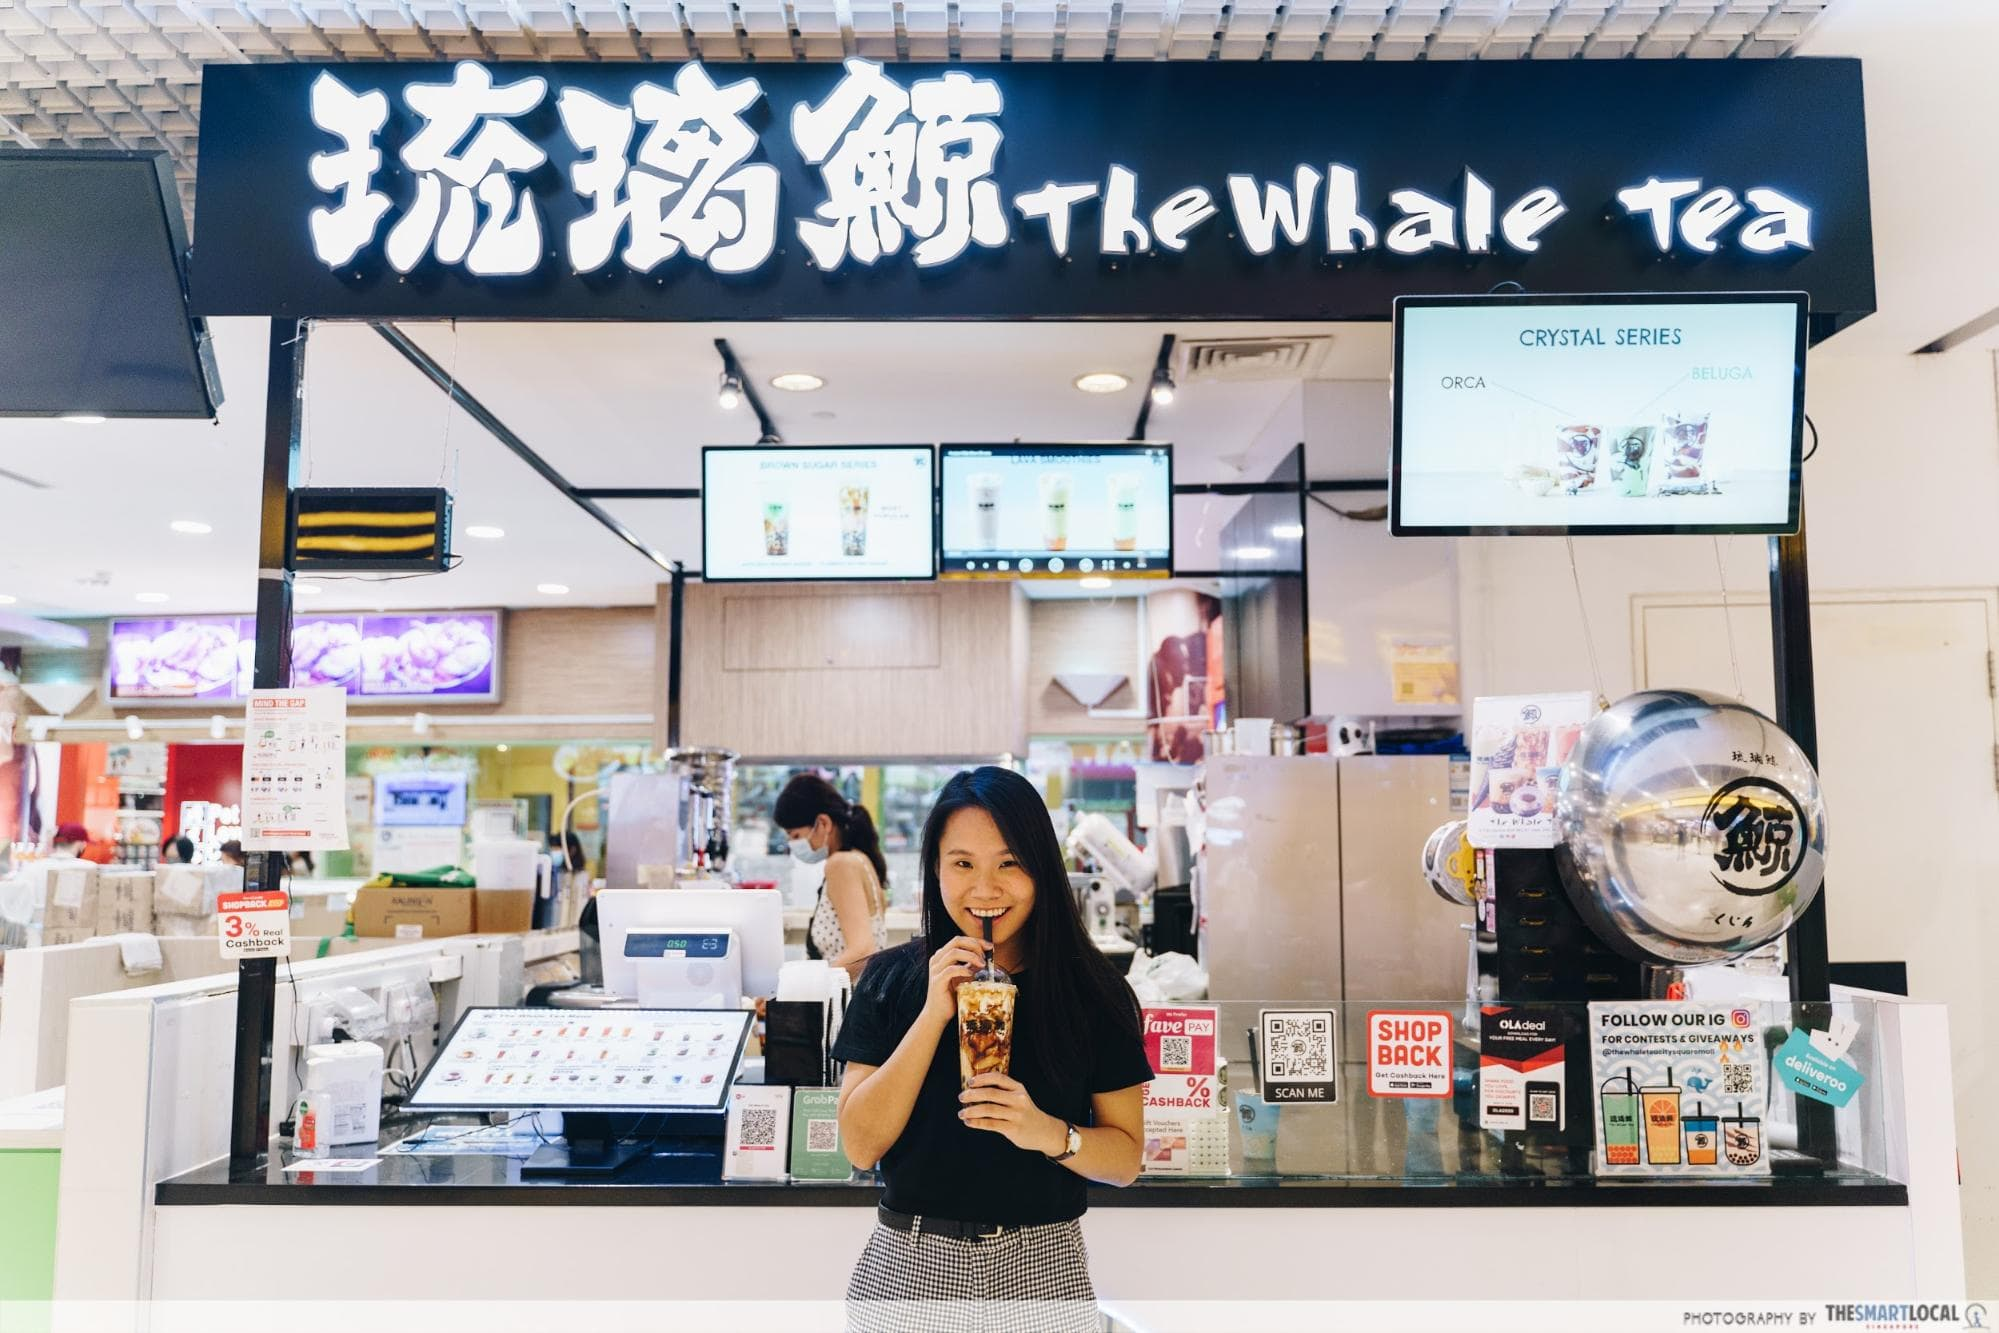 City Square Mall - The Whale Tea